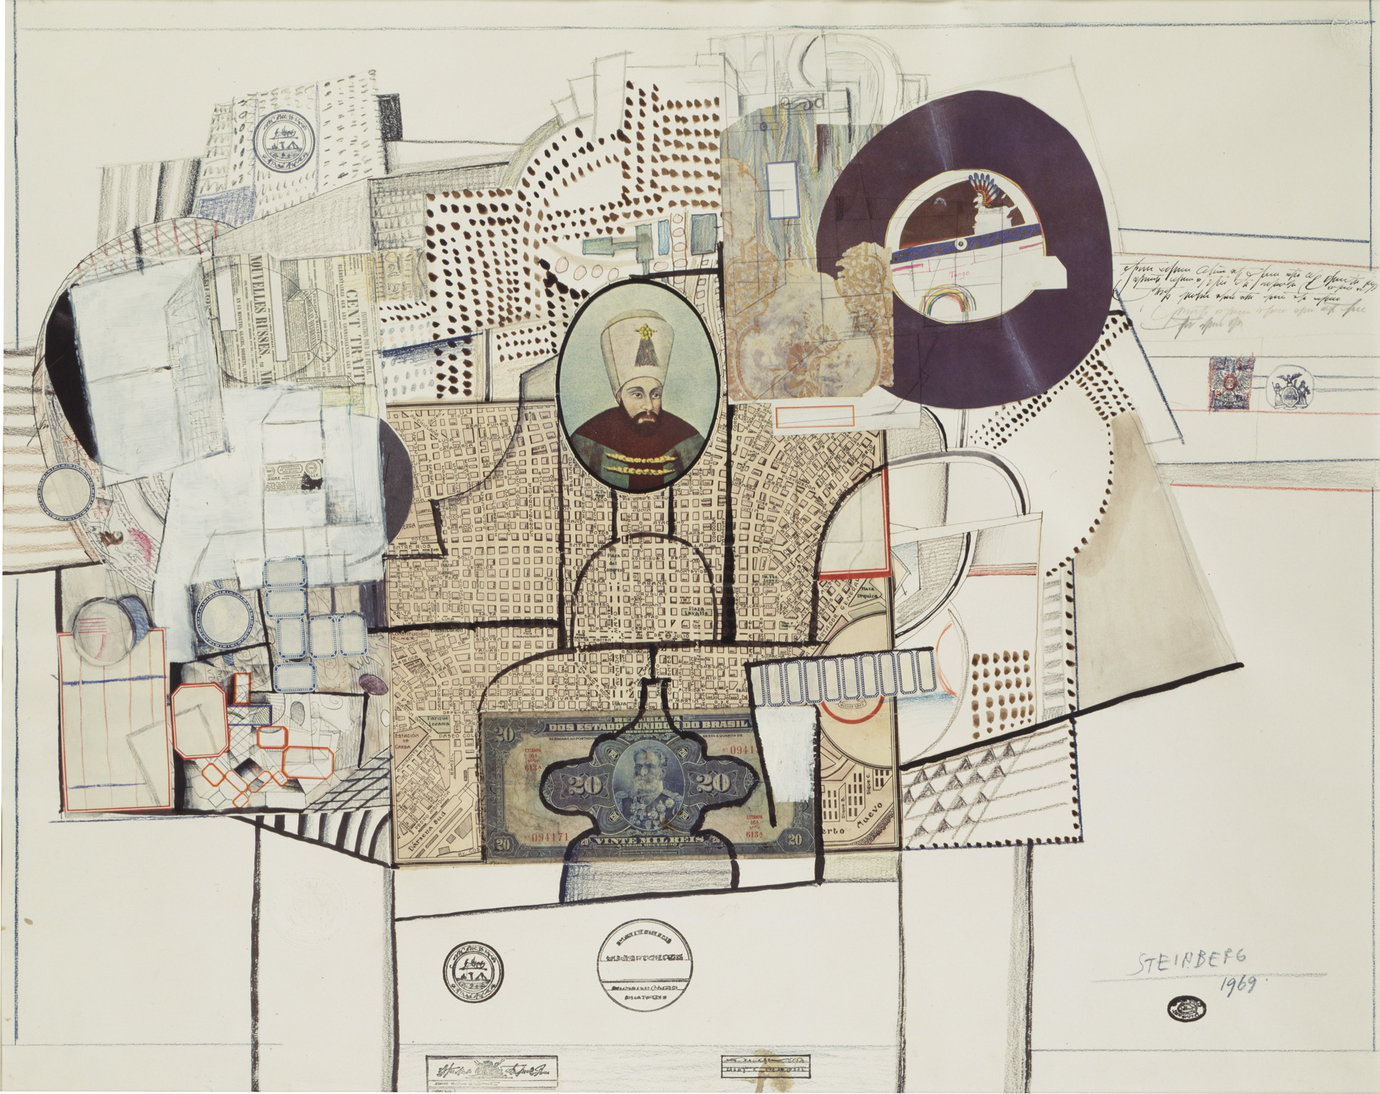 ", 1969. Pen, ink, colored pencil, graphite, oil paint, rubber stamps and collage on paper, 22-3/4"" x 28-3/4"" (57.8 cm x 73 cm)."